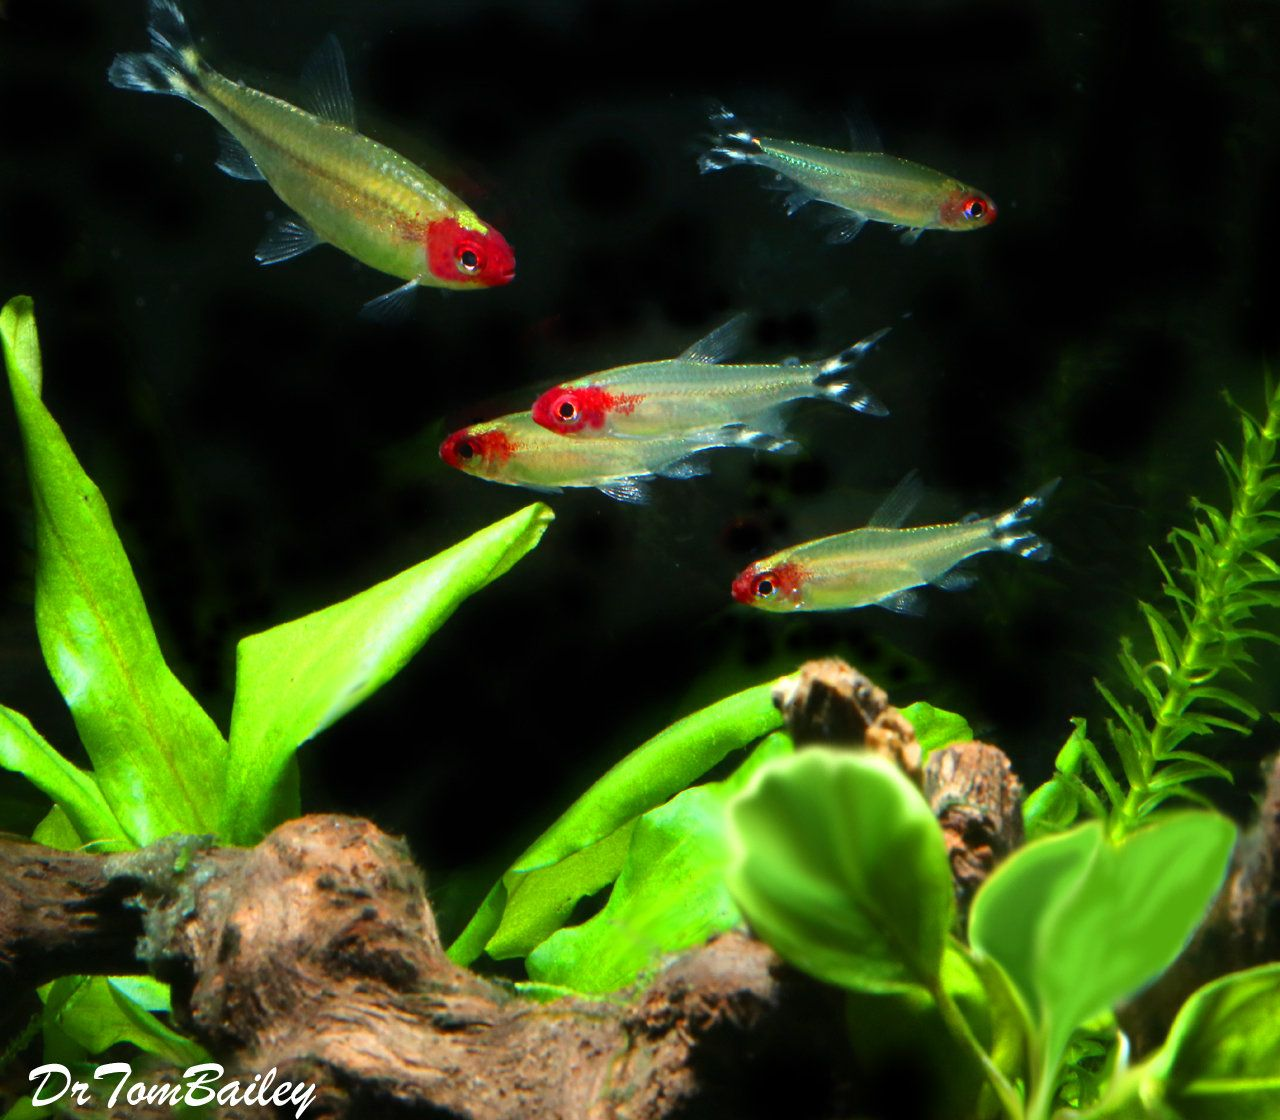 Premium Tank Raised Rummy Nose Tetra 1 To 1 2 Long Tank Raised Aquarium Fish Goldfish For Sale Betta Fish